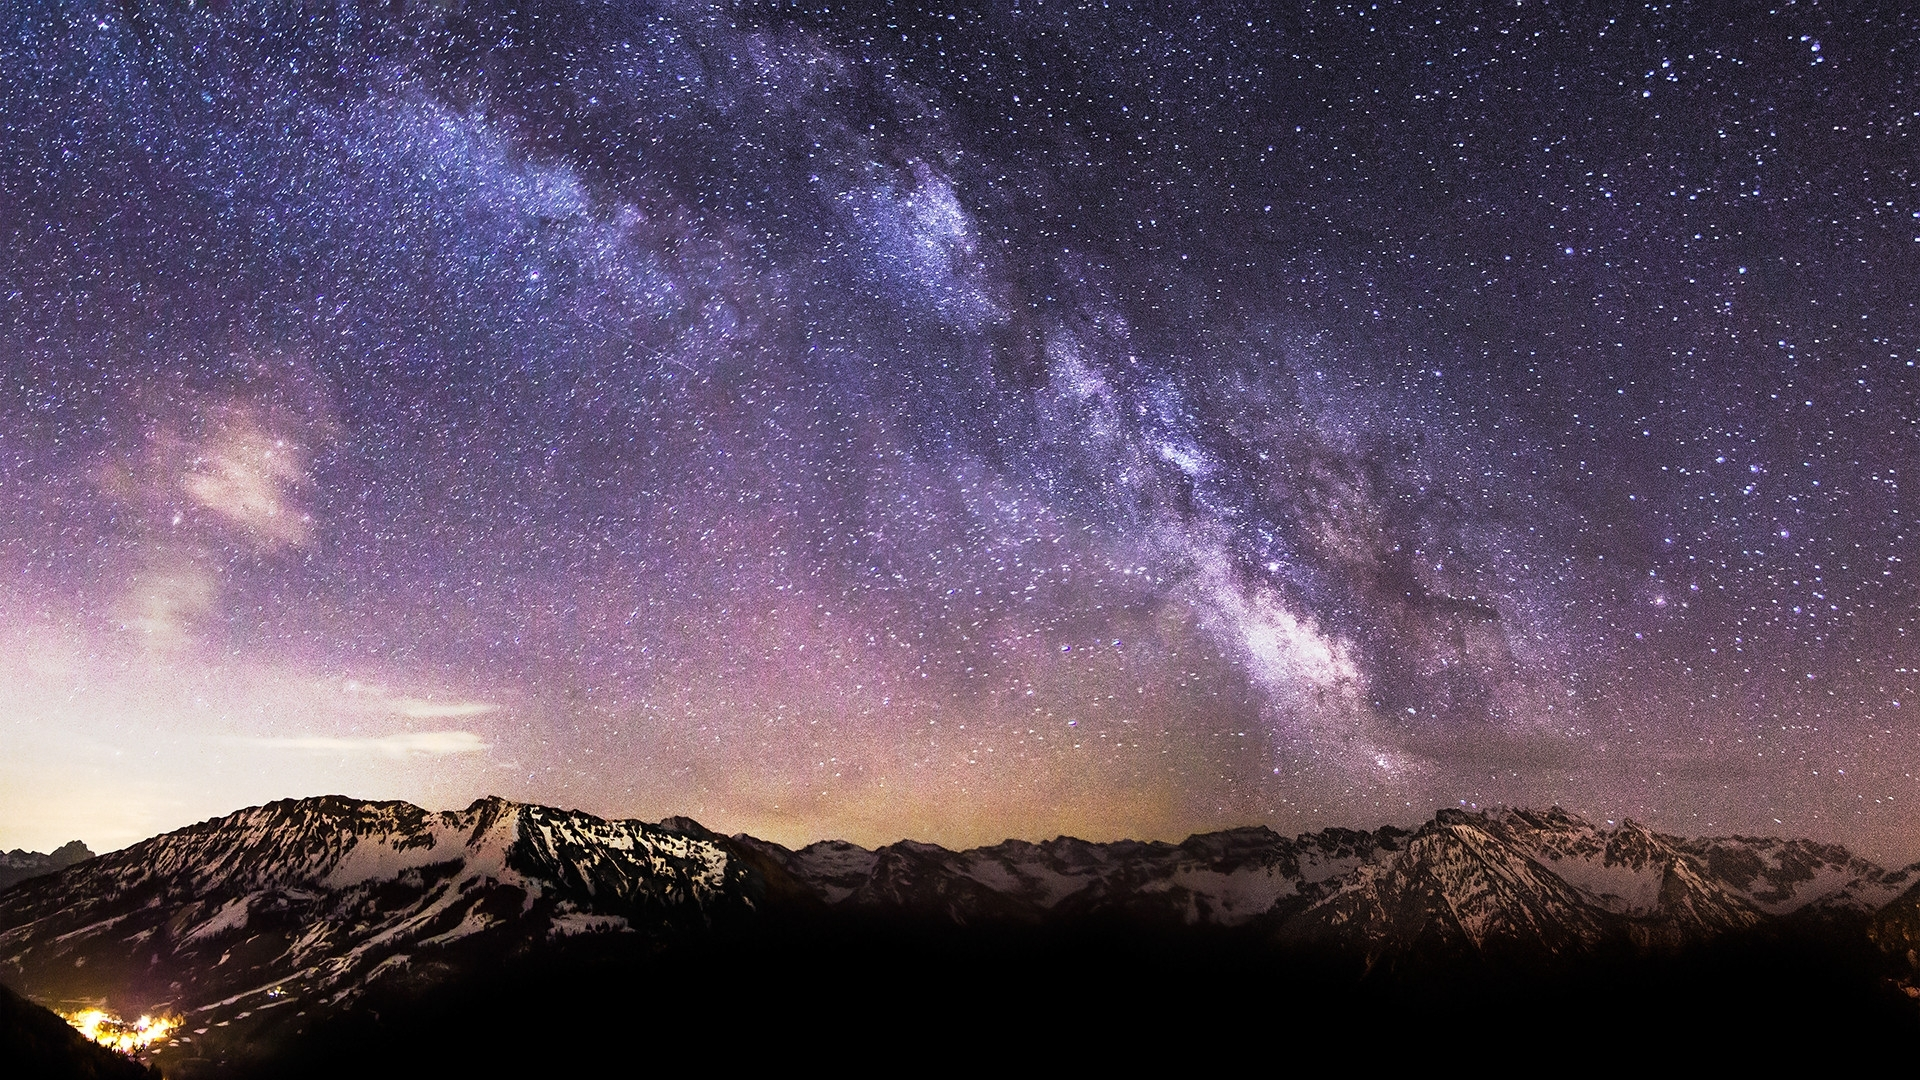 milky way wallpaper 1920x1080 (71+ images)